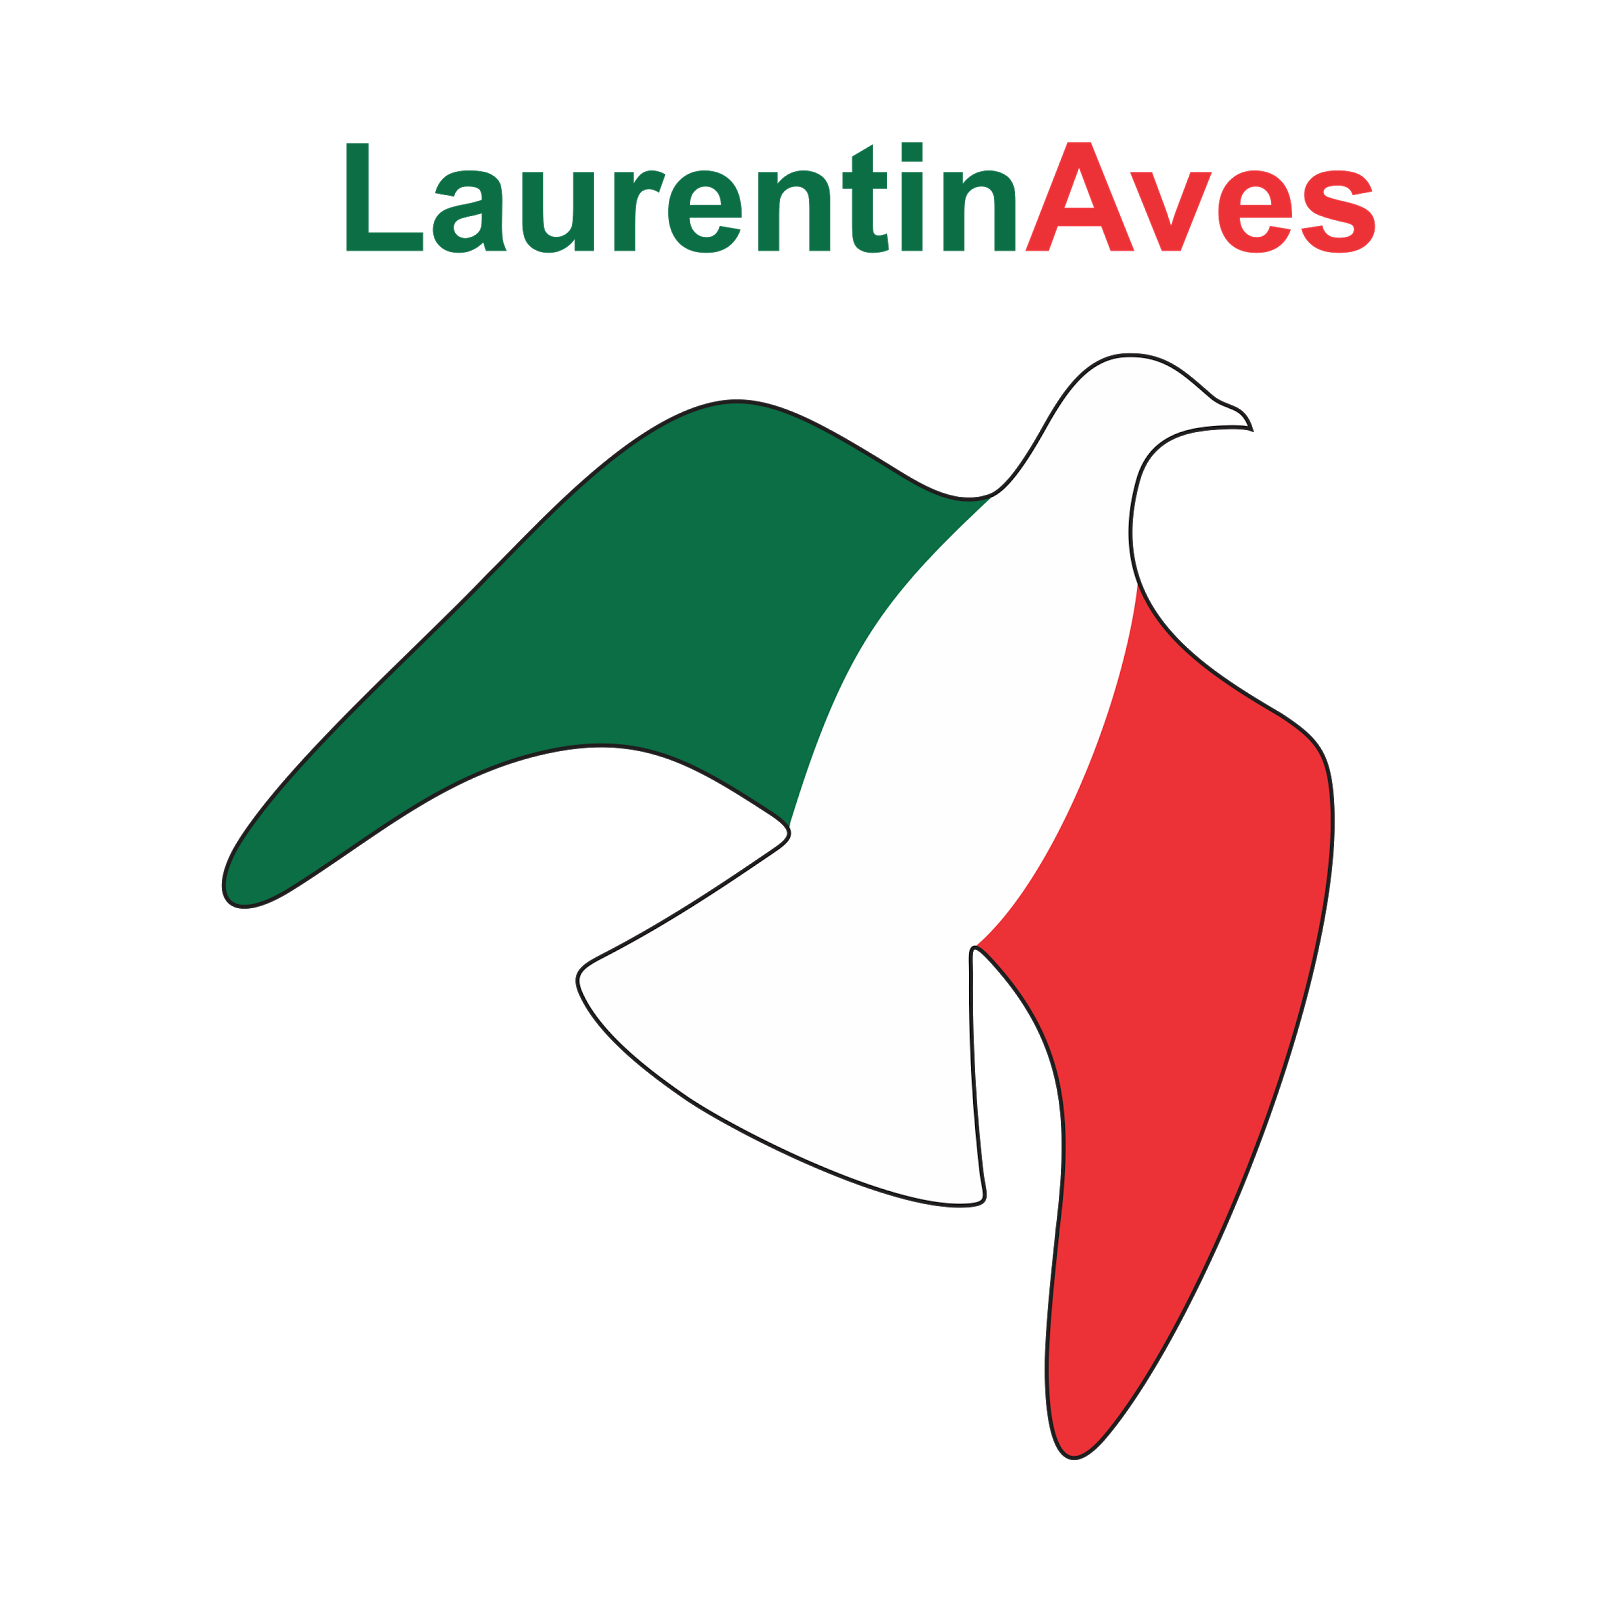 Logotipo Laurentinaves.